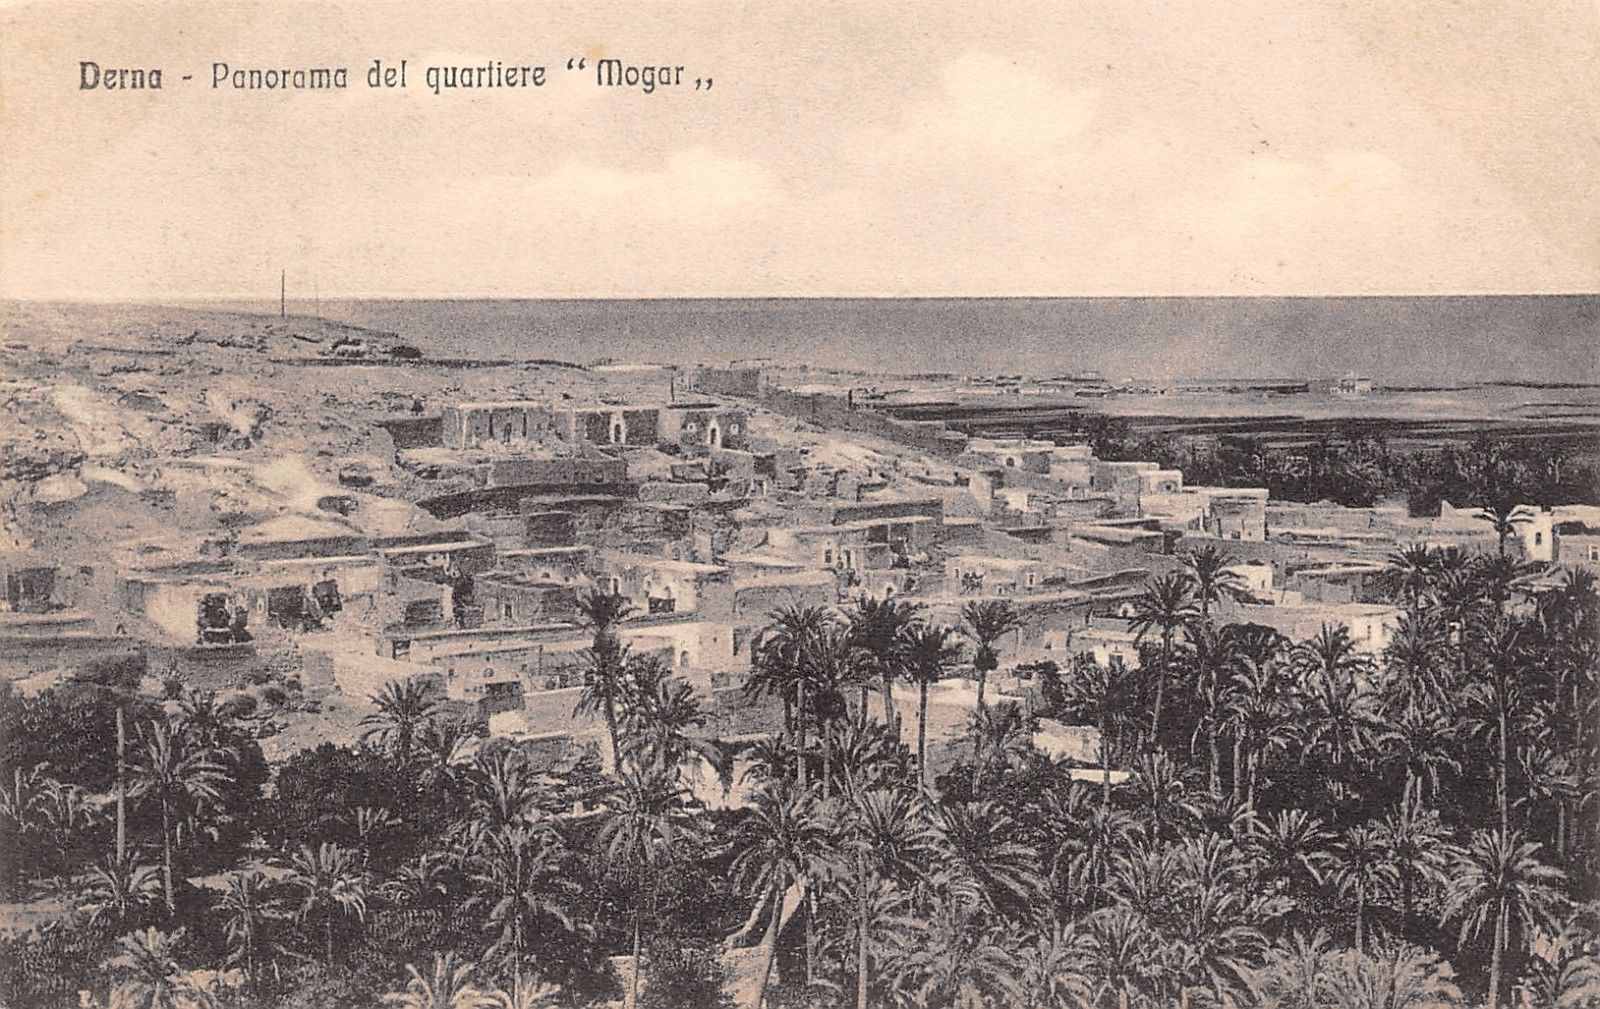 Postcard picture of Derna 1942